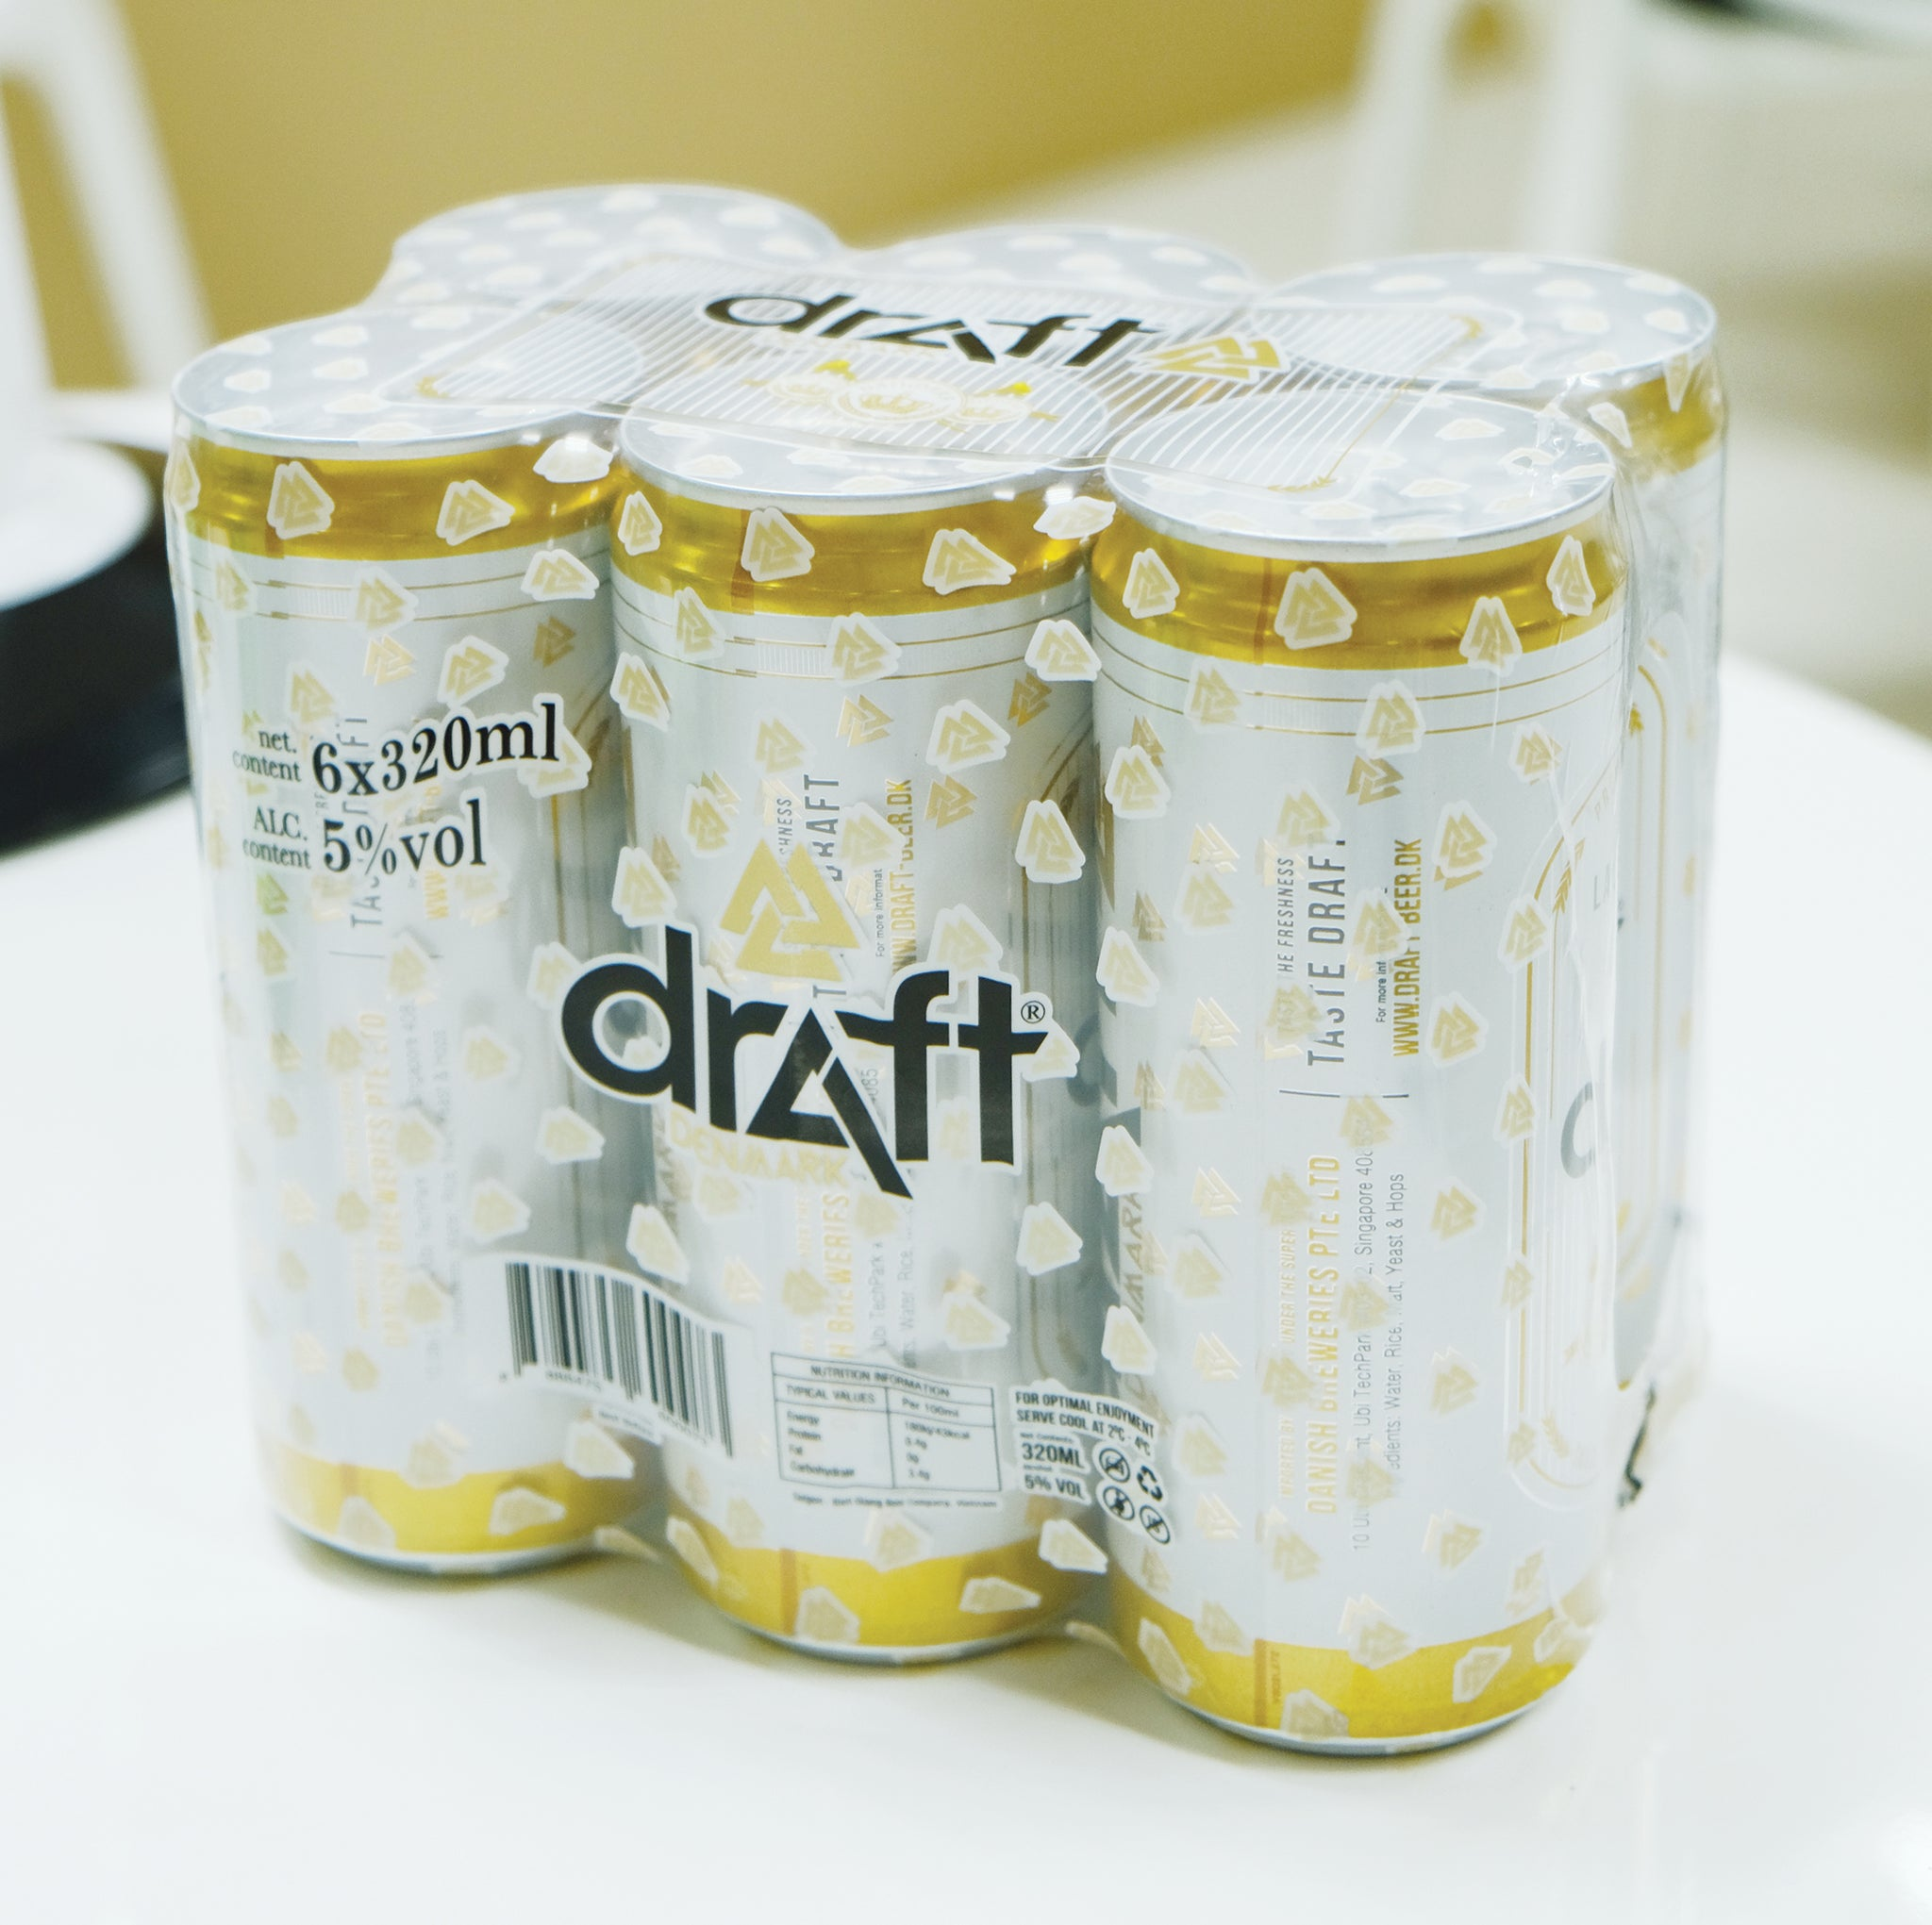 Draft Denmark Lager - Slim Can - 320ml Can - 6 Pack